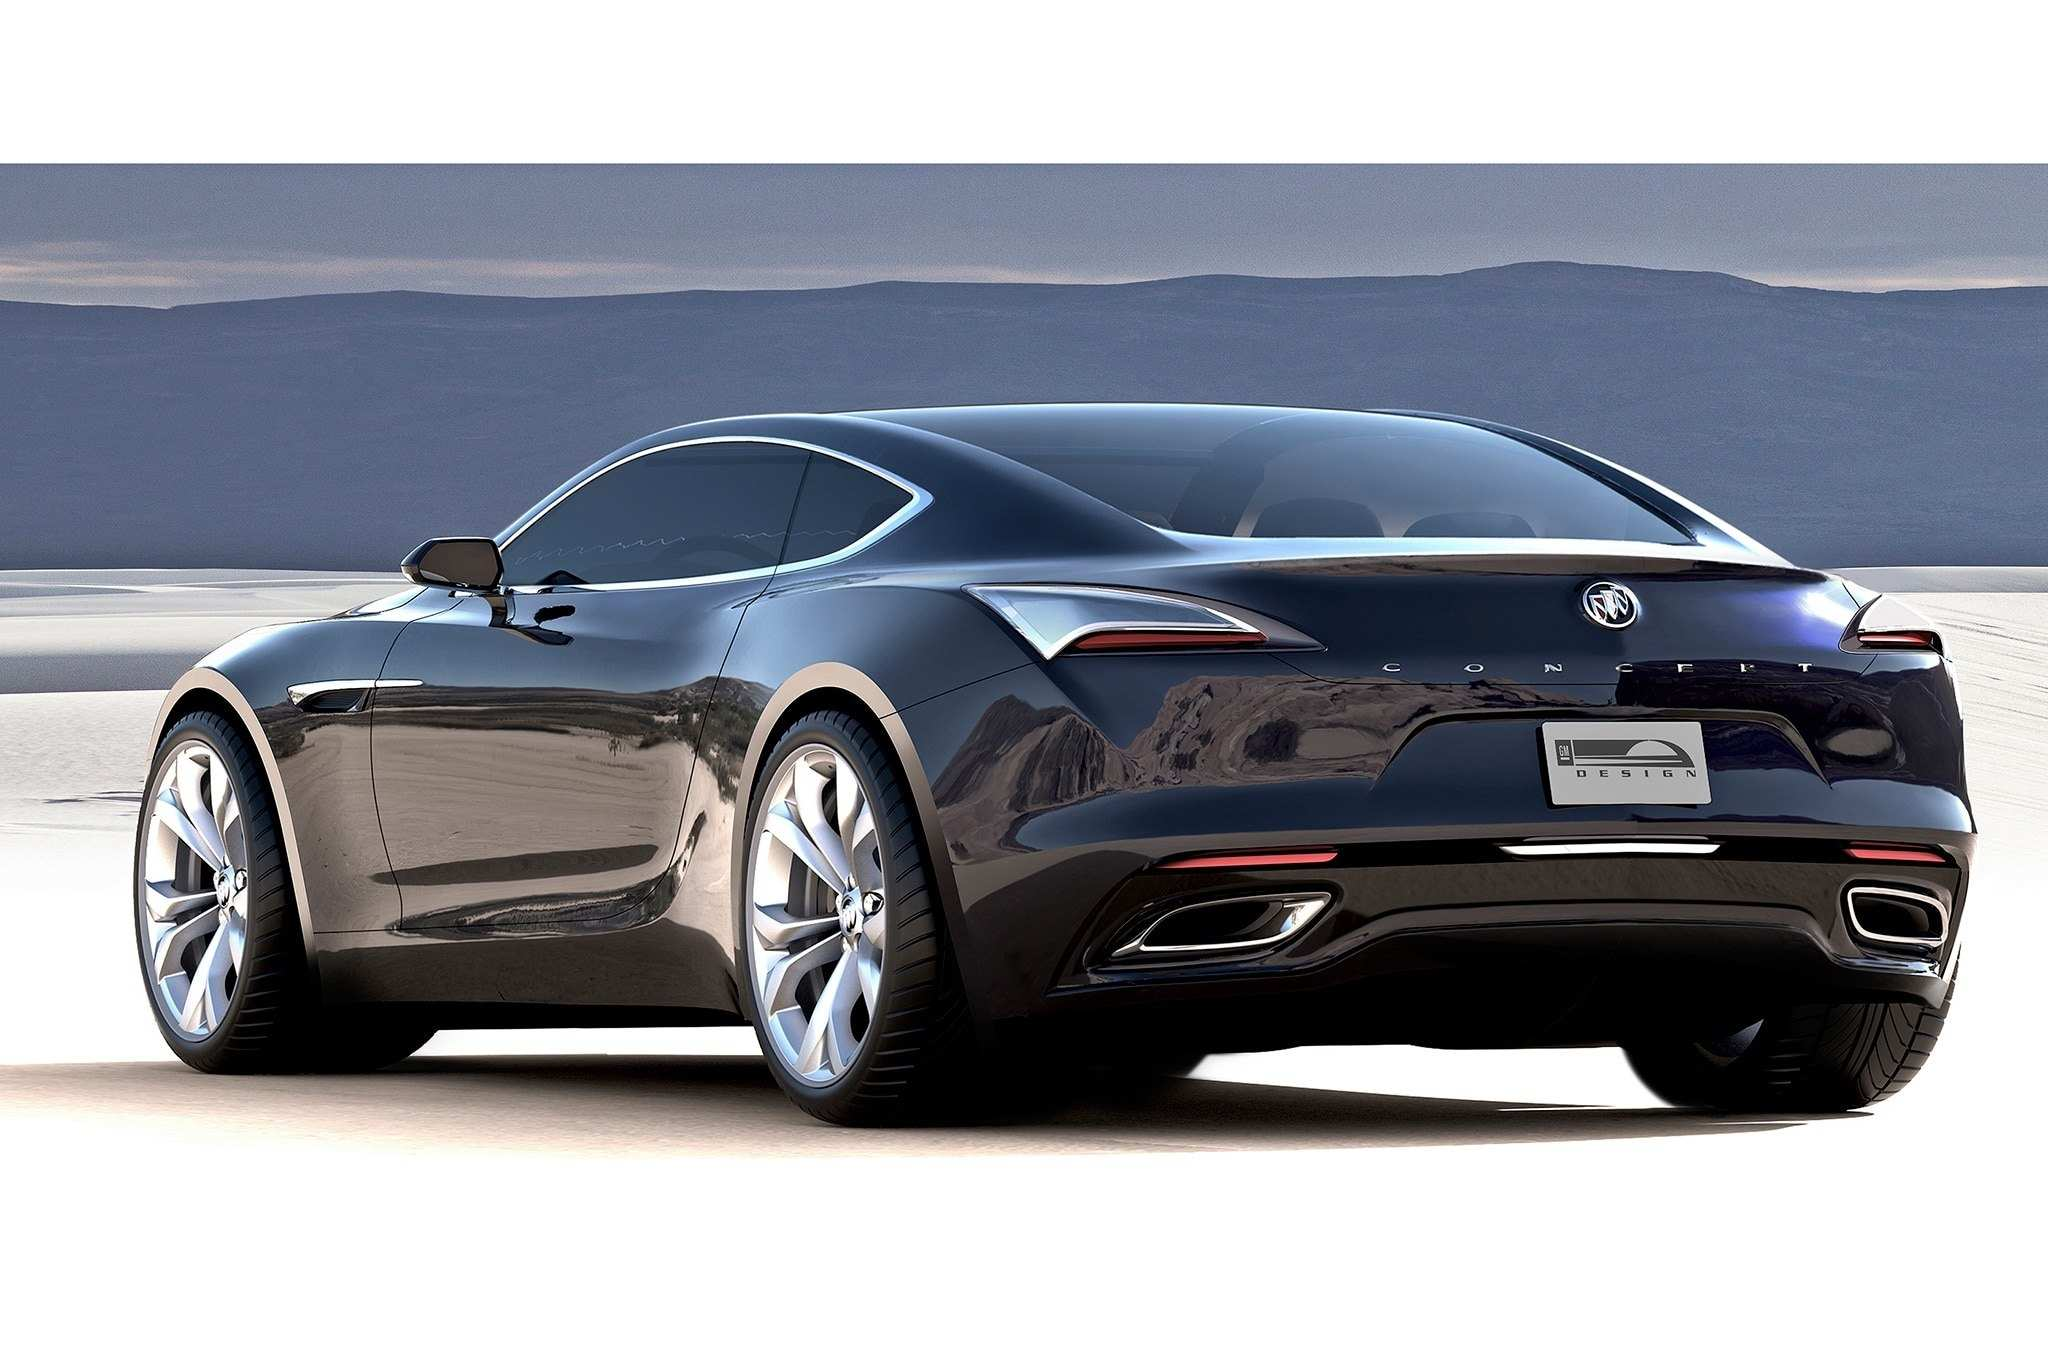 80 The Best Buick New Cars 2020 Concept